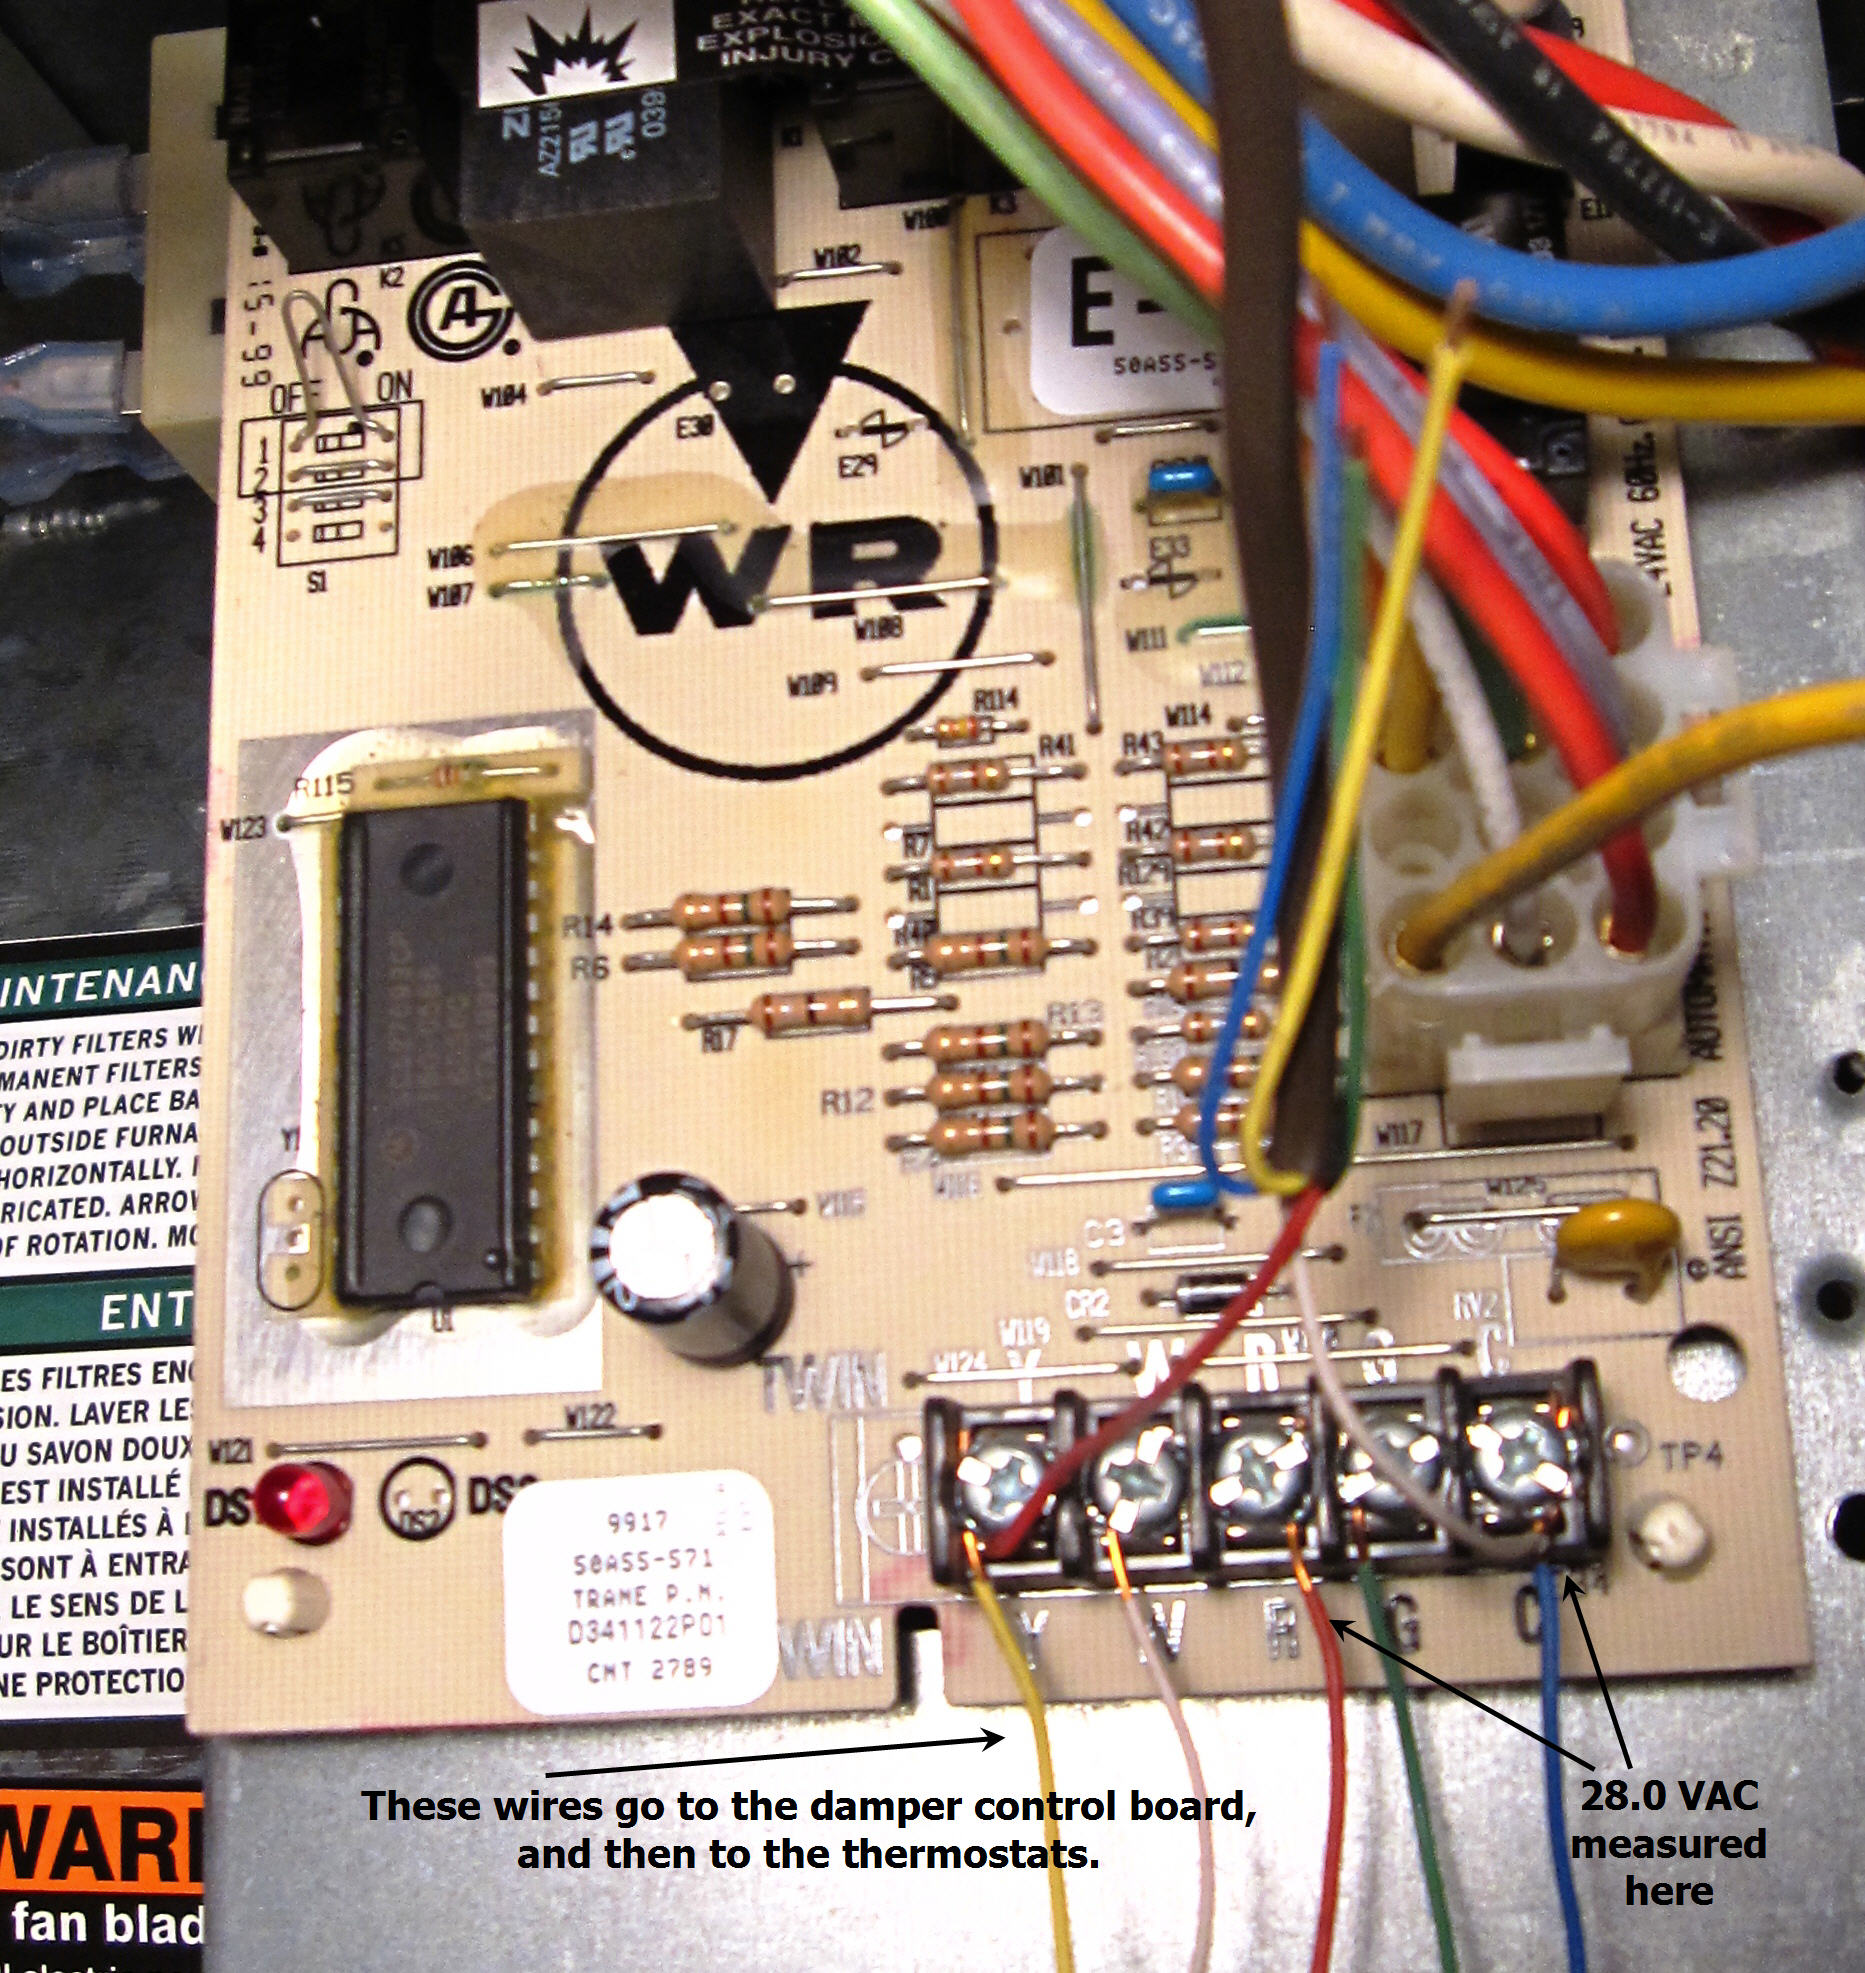 furnace control wiring    furnace       furnace    zone not working     furnace       furnace    zone not working